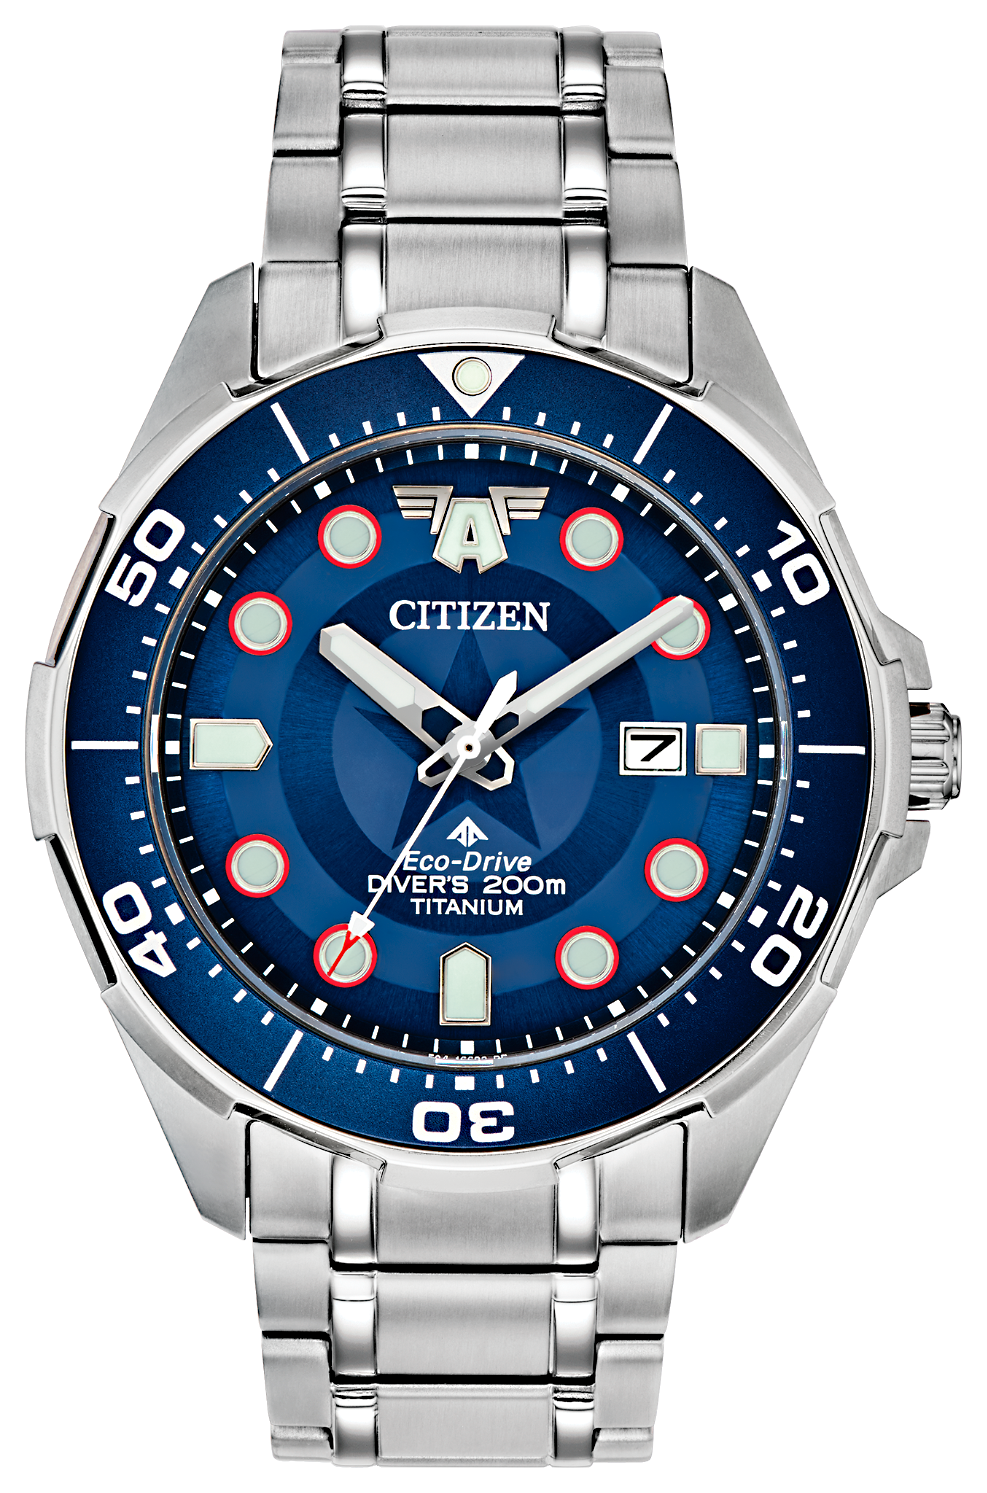 Reloj super-titanium, solar- motivo marvel de citizen watch modelo BN0208-54W